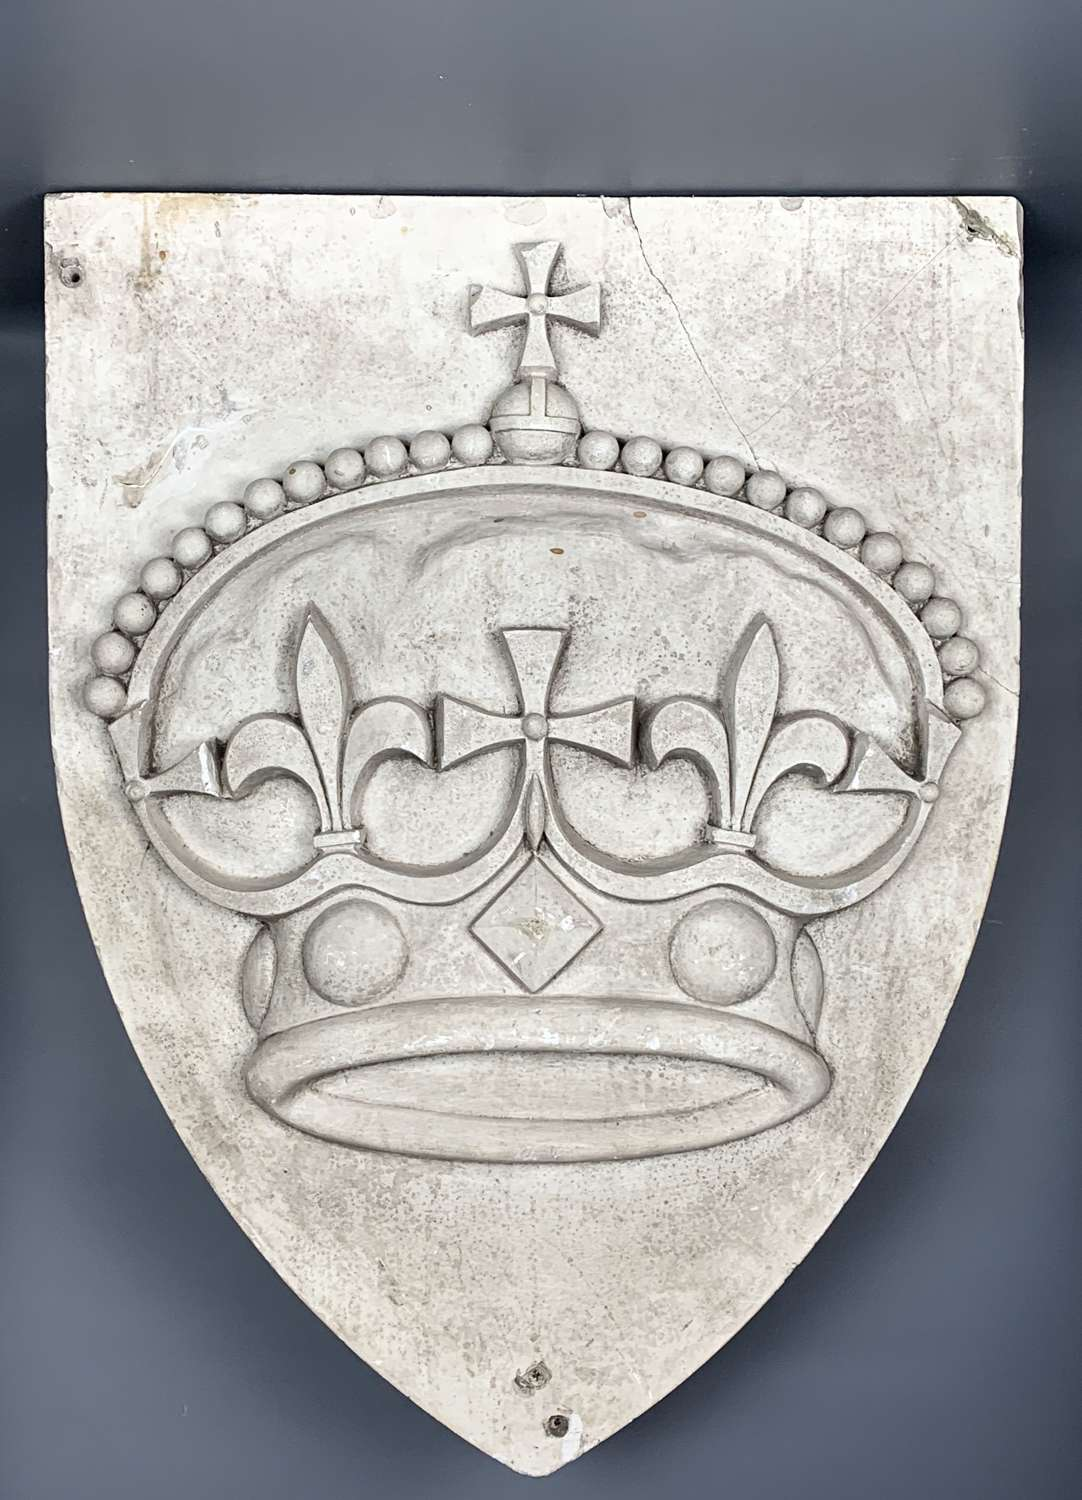 Large Architectural Shield Shaped Plaster Plaque of a Crown